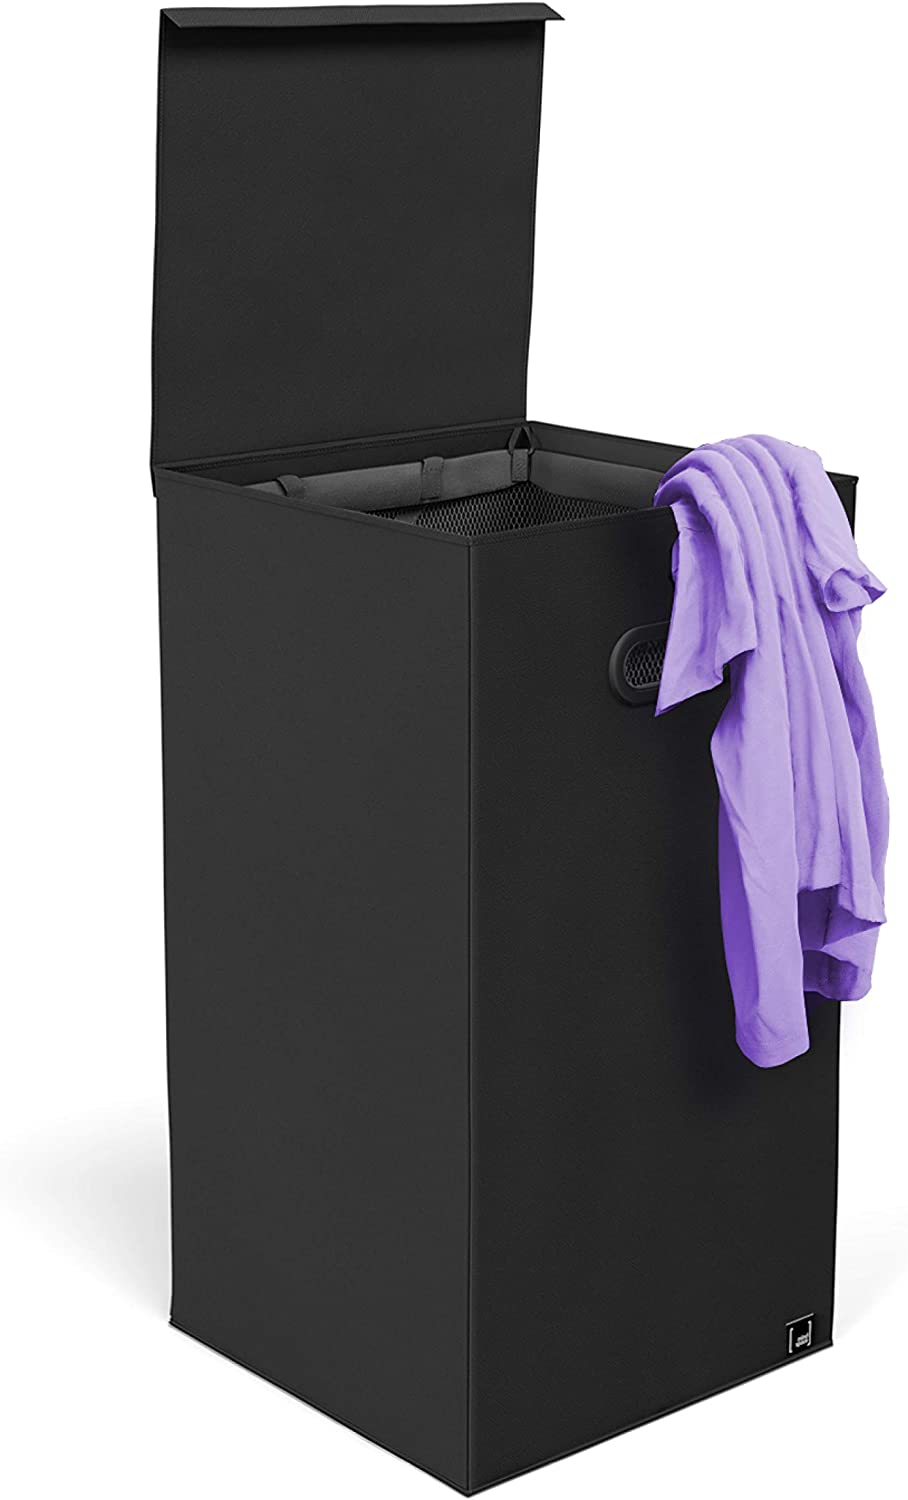 Mindspace Black Laundry Hamper with Lid and Mesh Liner - Foldable Mini Laundry Bin for Small Apartment, Bathroom, Dorm, Laundry Room - Oxford Collection